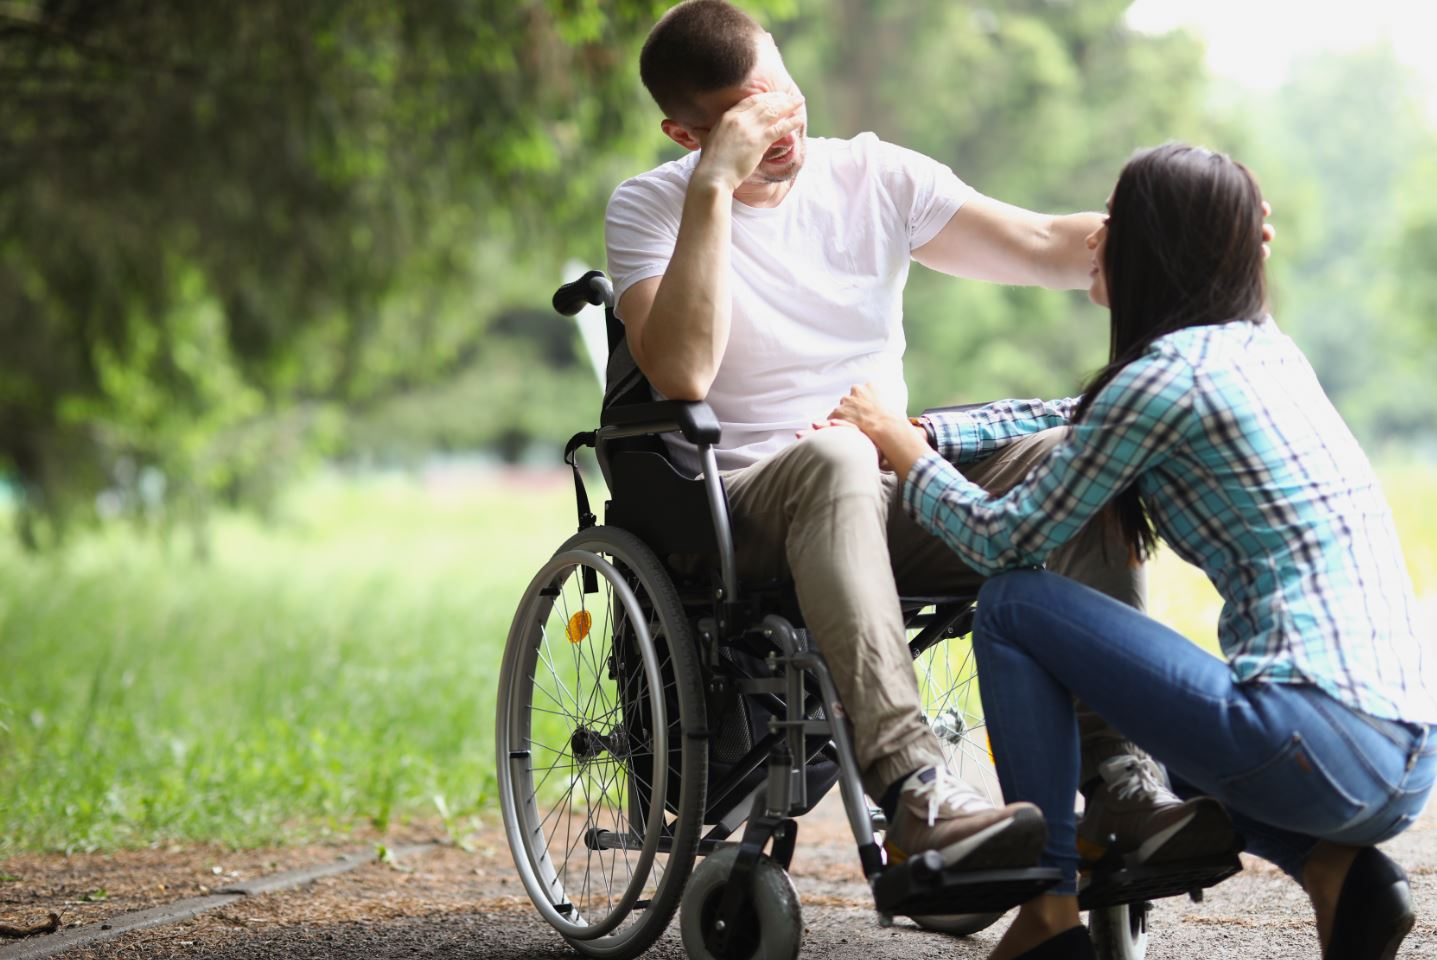 Living with uncertainty, pain and compromised physical ability